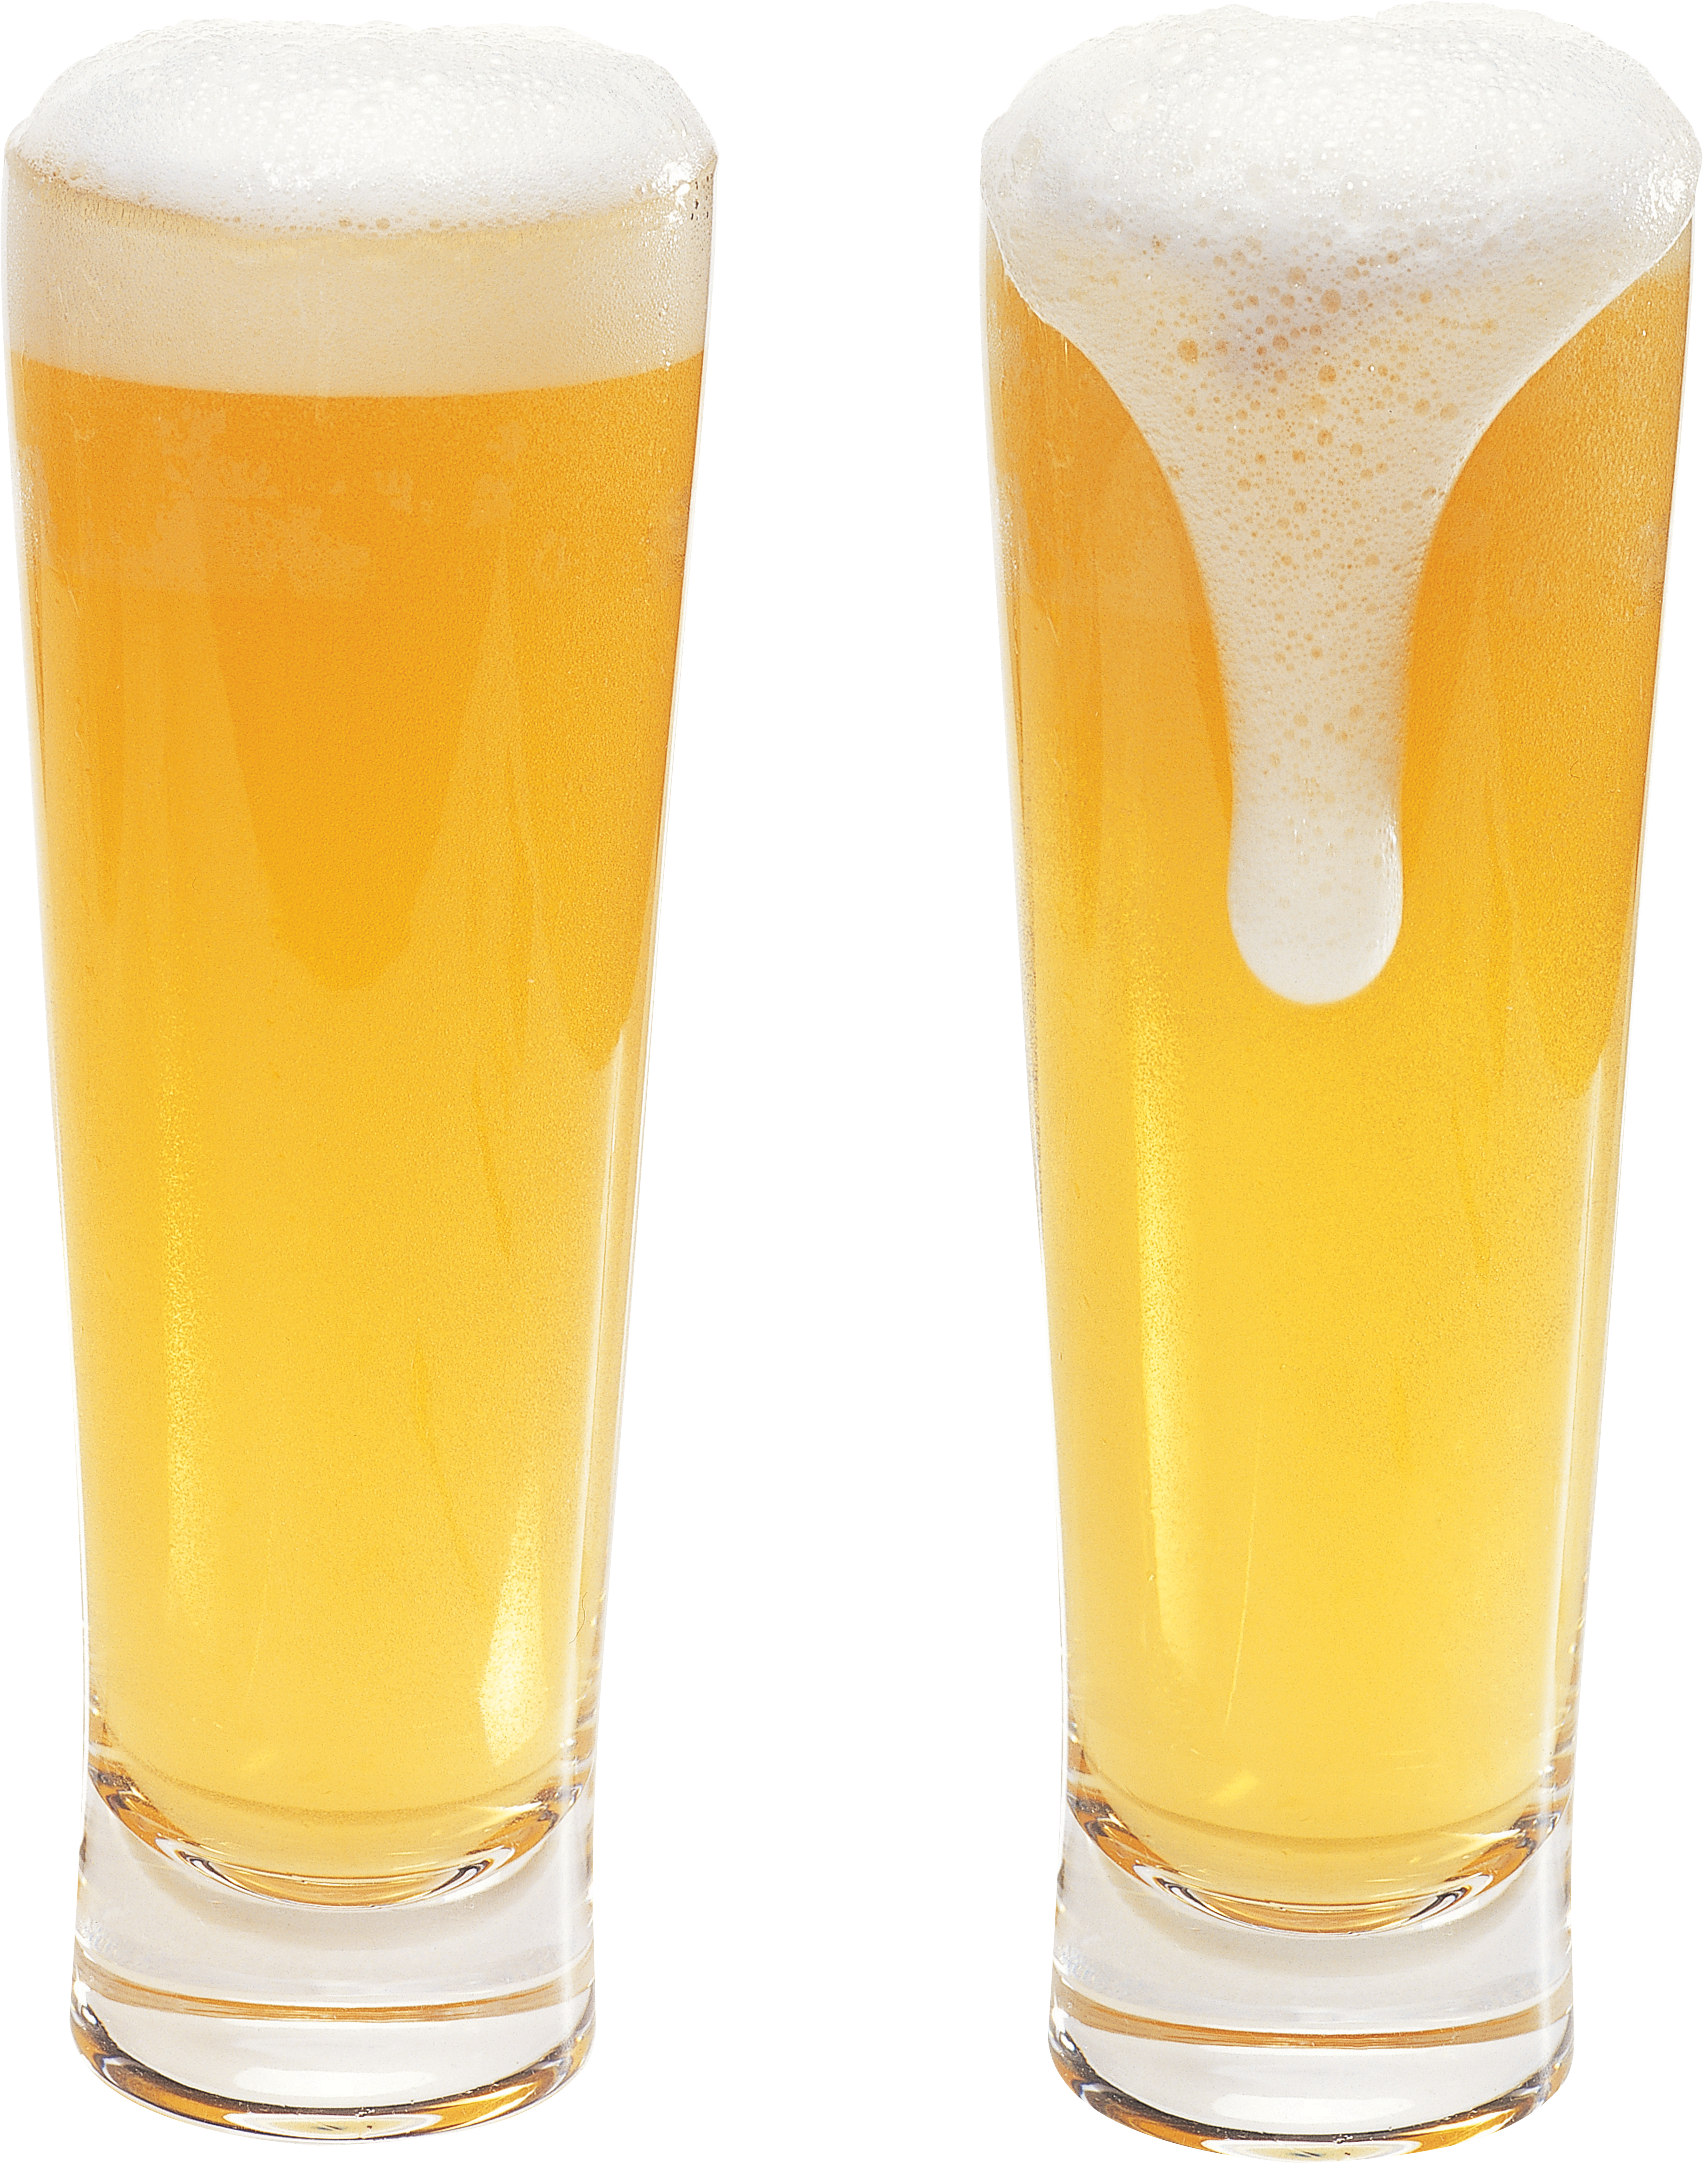 Glass Of Beer Png - Glass Of Beer PNG Image - PurePNG | Free transparent CC0 PNG Image ...